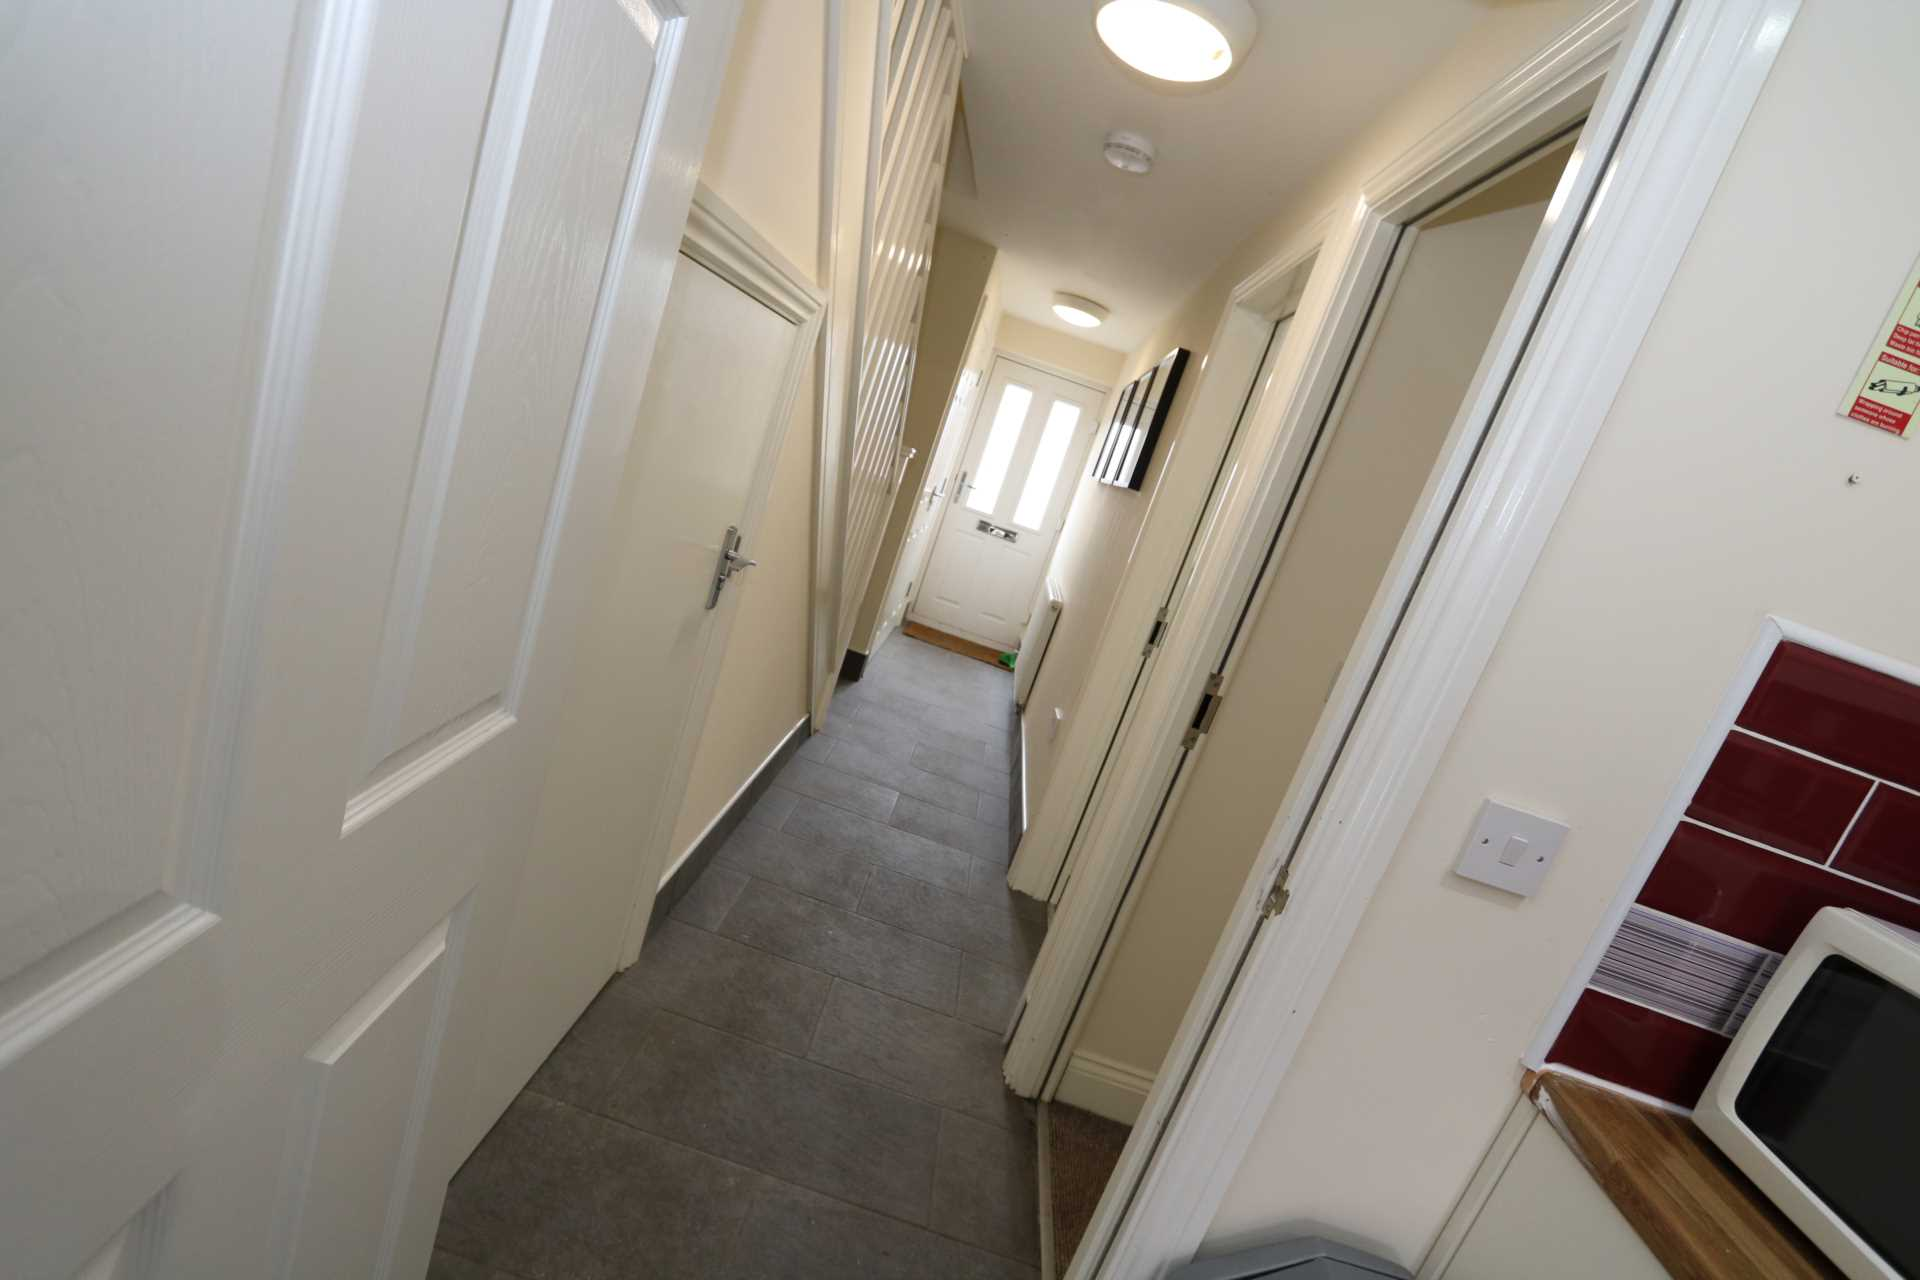 Room 1 Dysart Close - fully furnished double en-suite student room, WIFI & bills included - NO FEES, Image 5